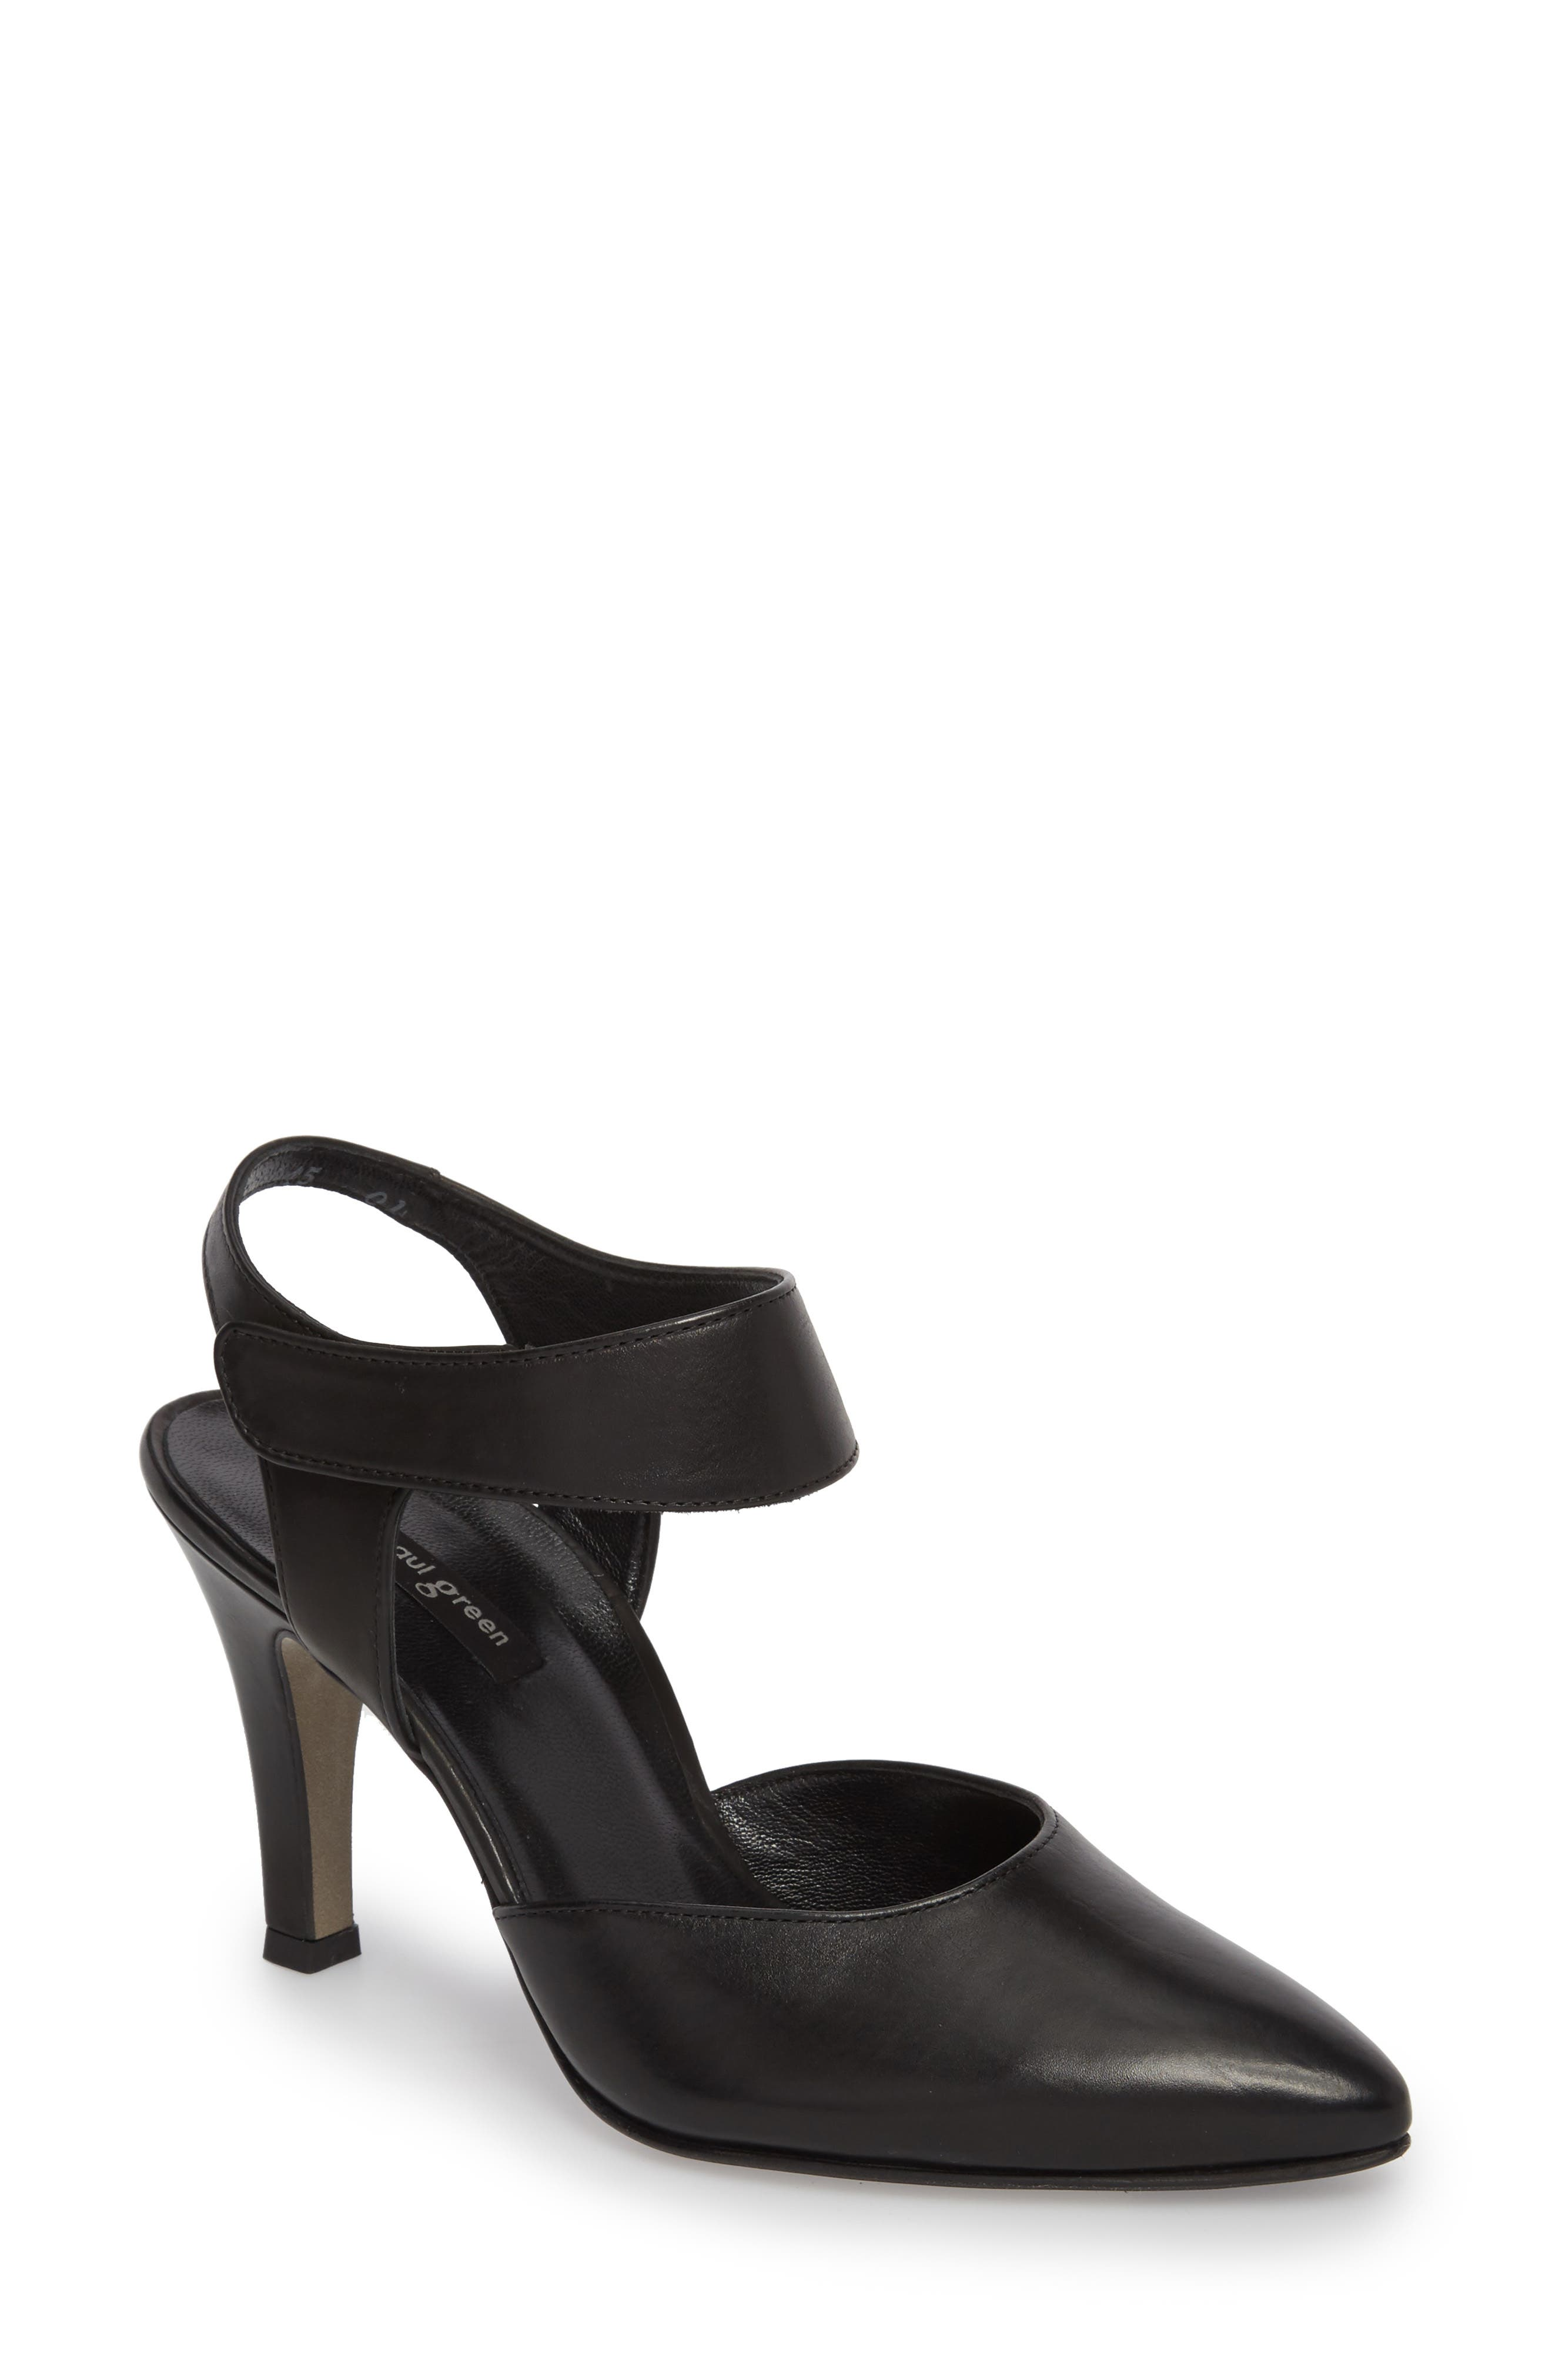 Nicolette Pointy Toe Pump,                         Main,                         color, BLACK LEATHER